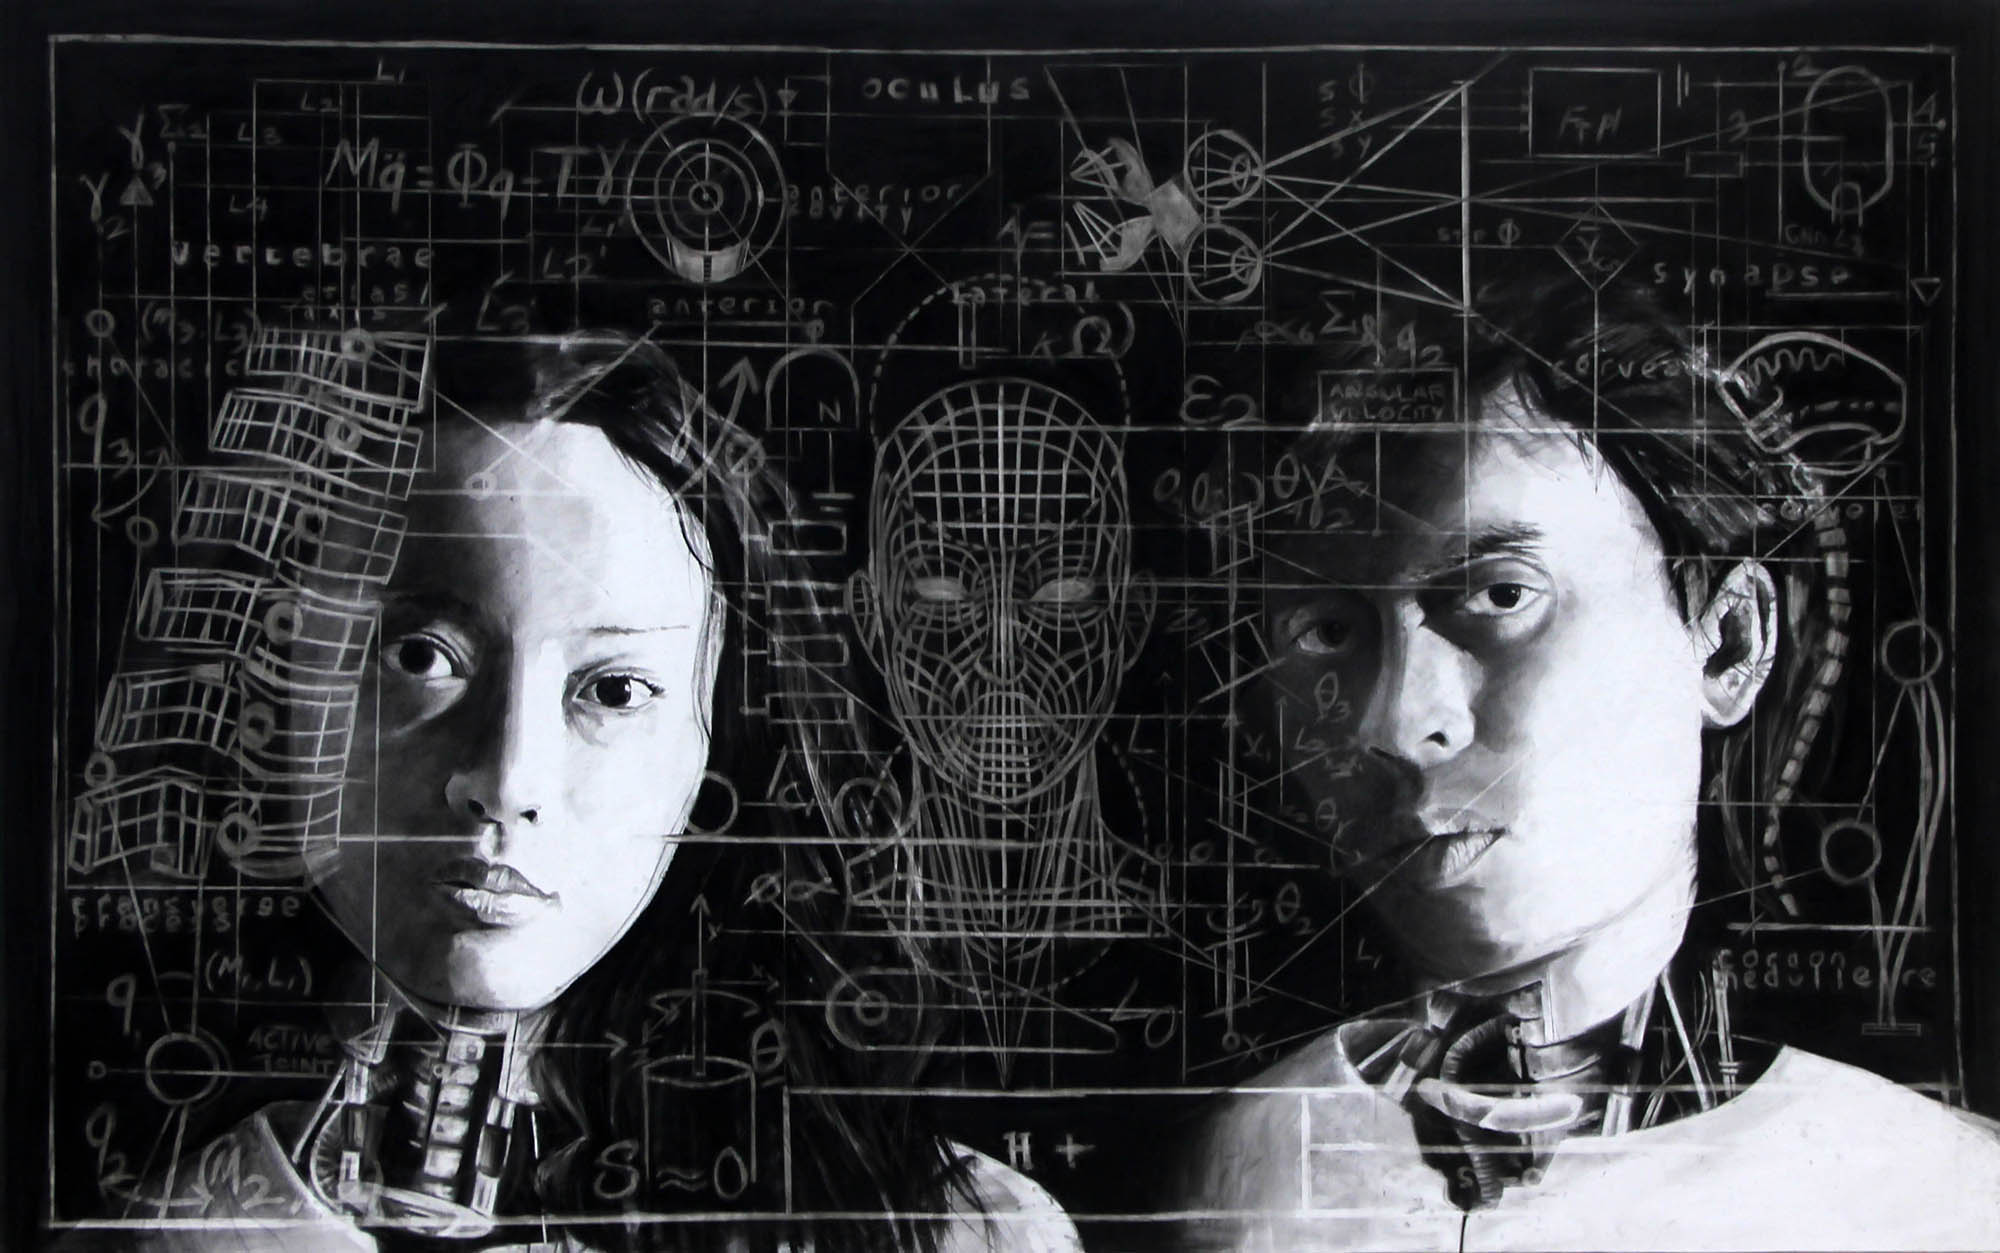 Dalam Angan Agenda Kemajuan #2, 250 x 150 cm, 2016, Charcoal on Canvas